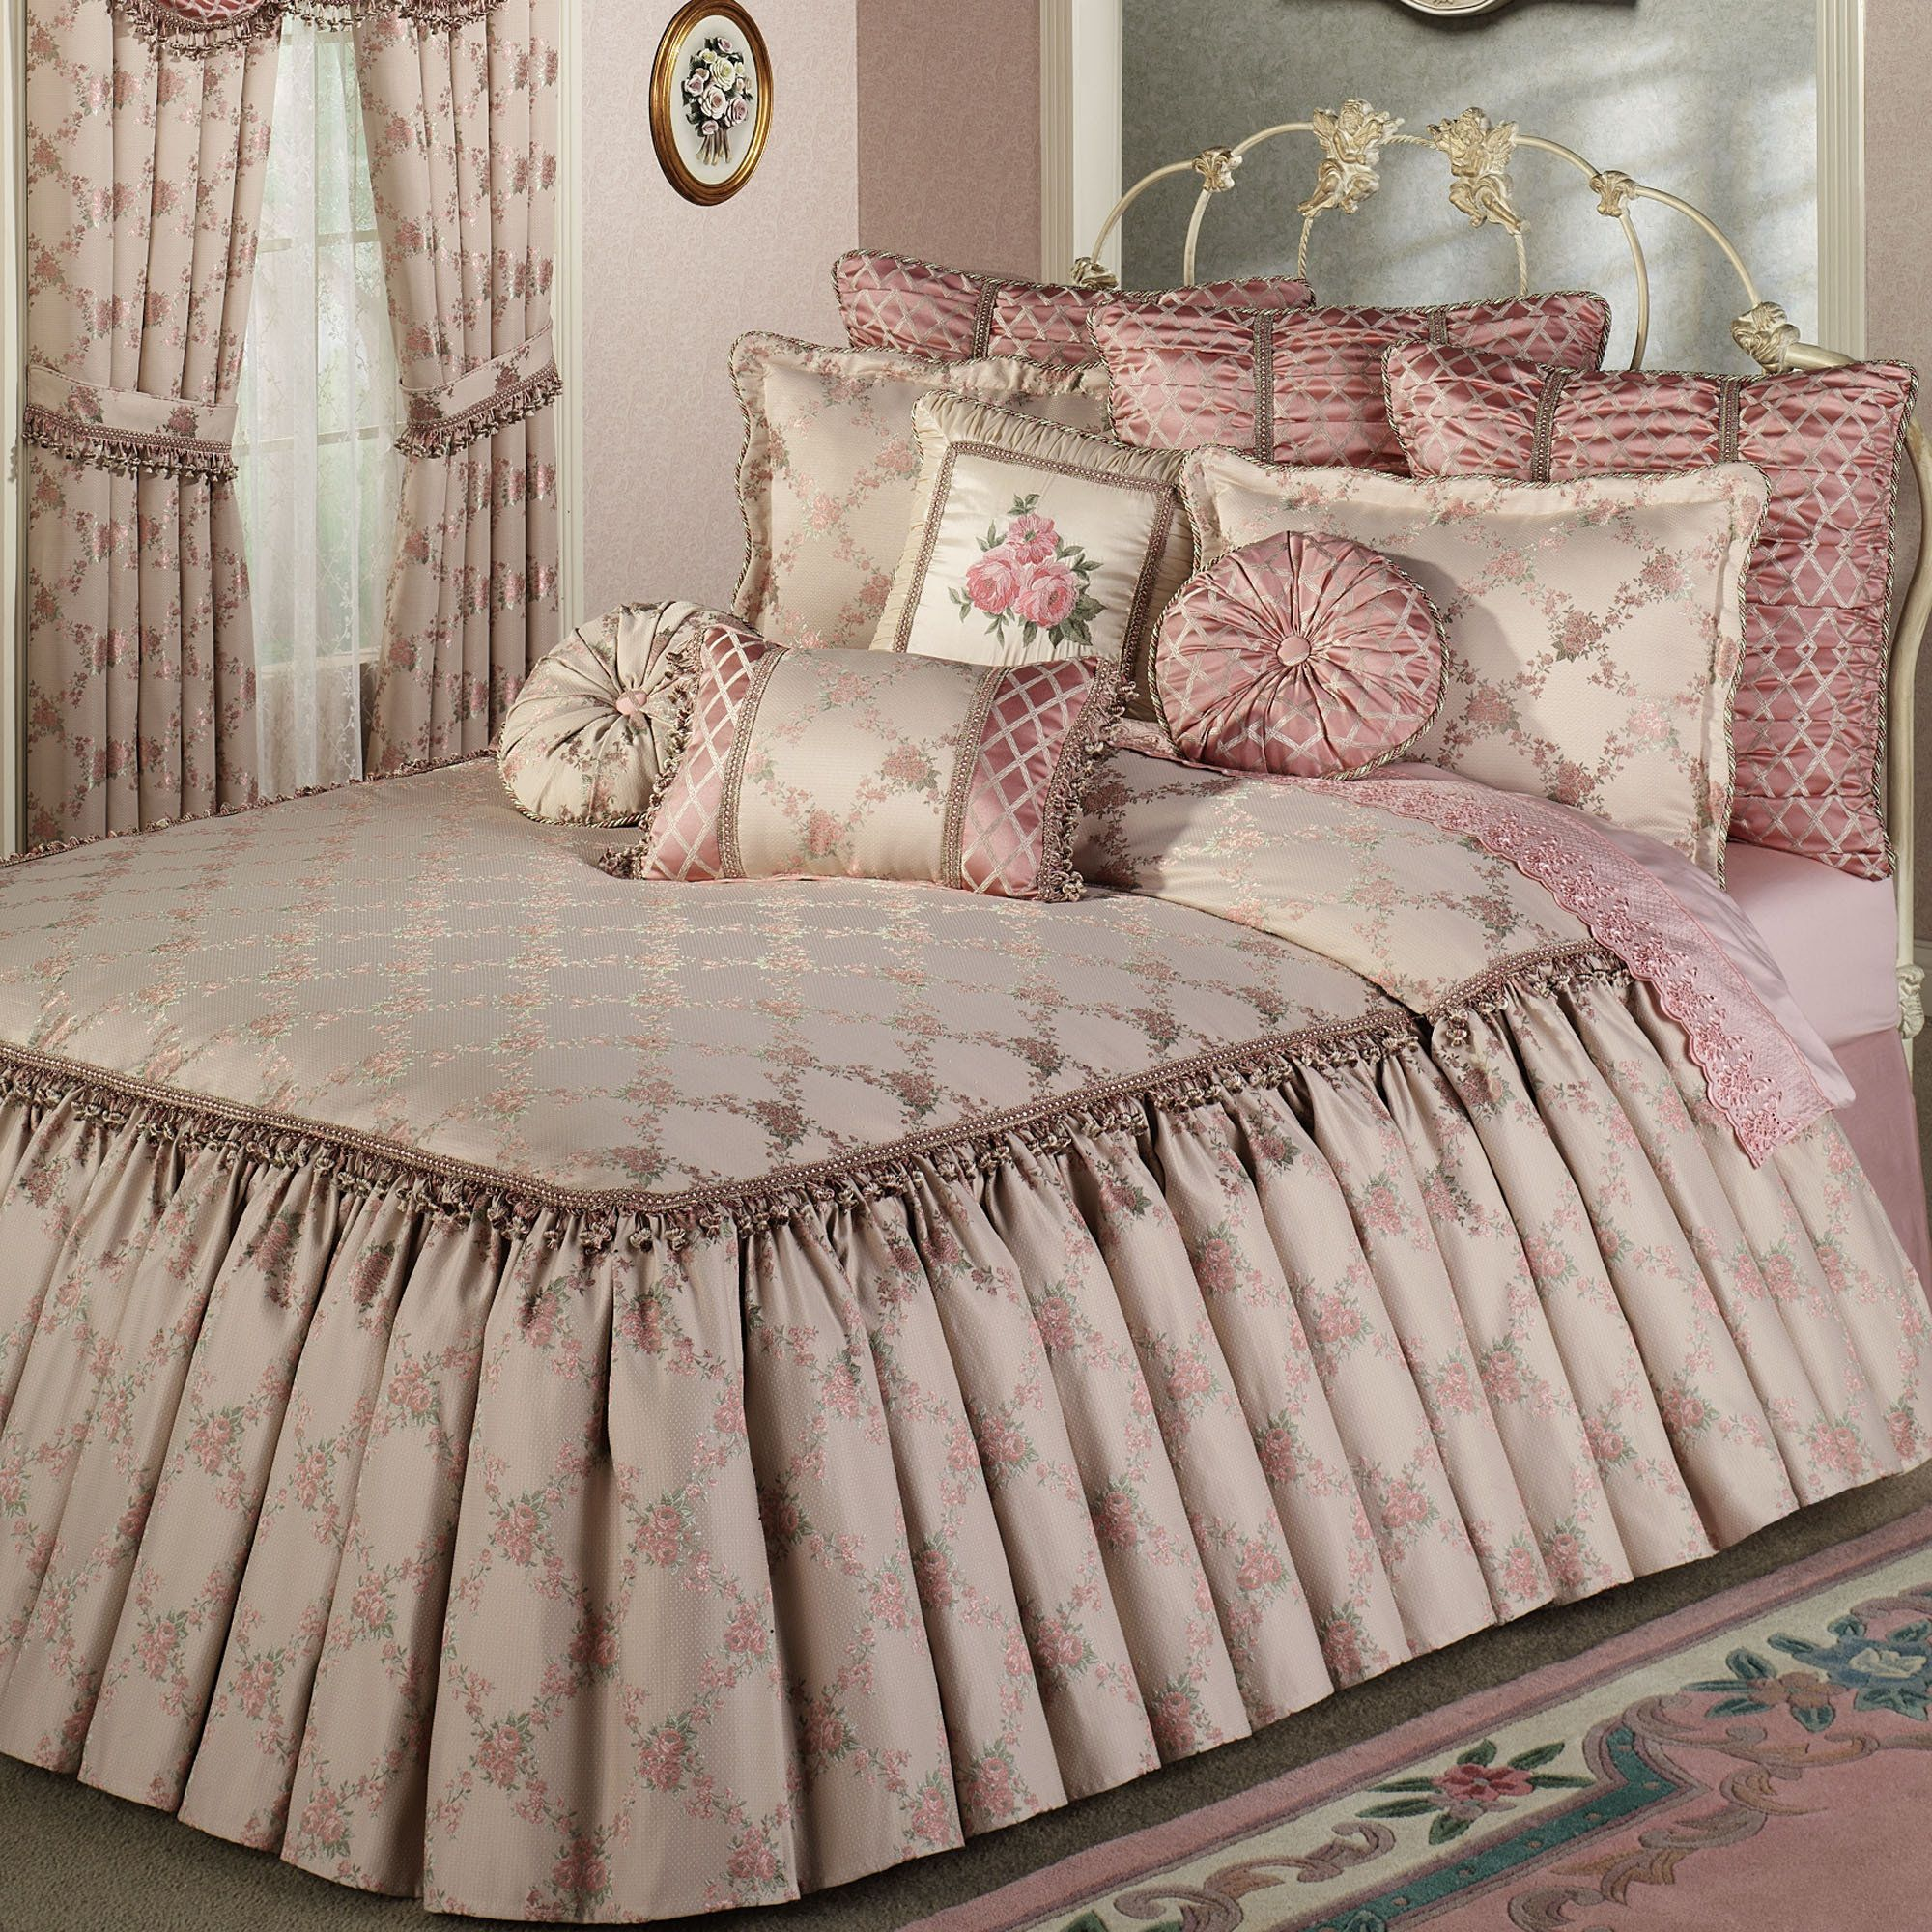 Schlafzimmer Set Lourette Touch Of Class Curtains Bedding Waverly Comforters Bed Sets